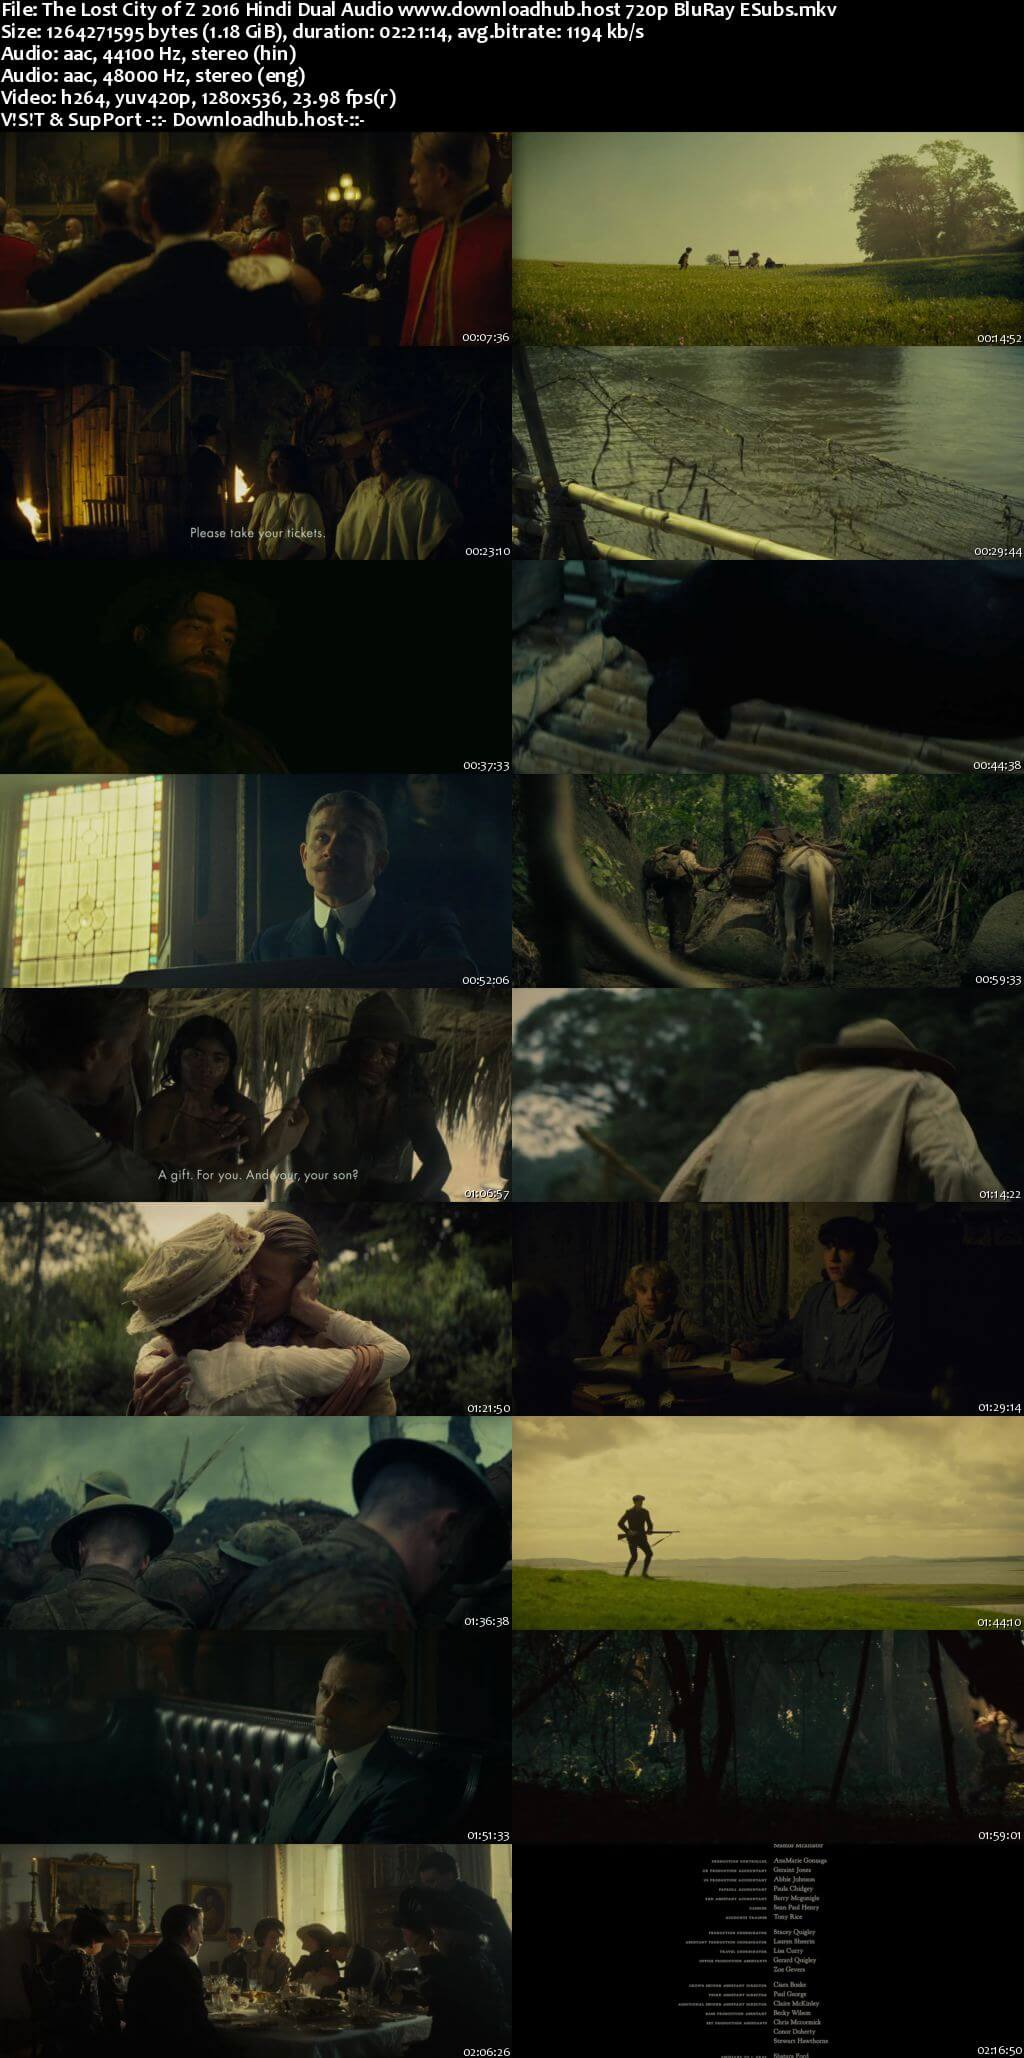 The Lost City of Z 2016 Hindi Dual Audio 720p BluRay ESubs